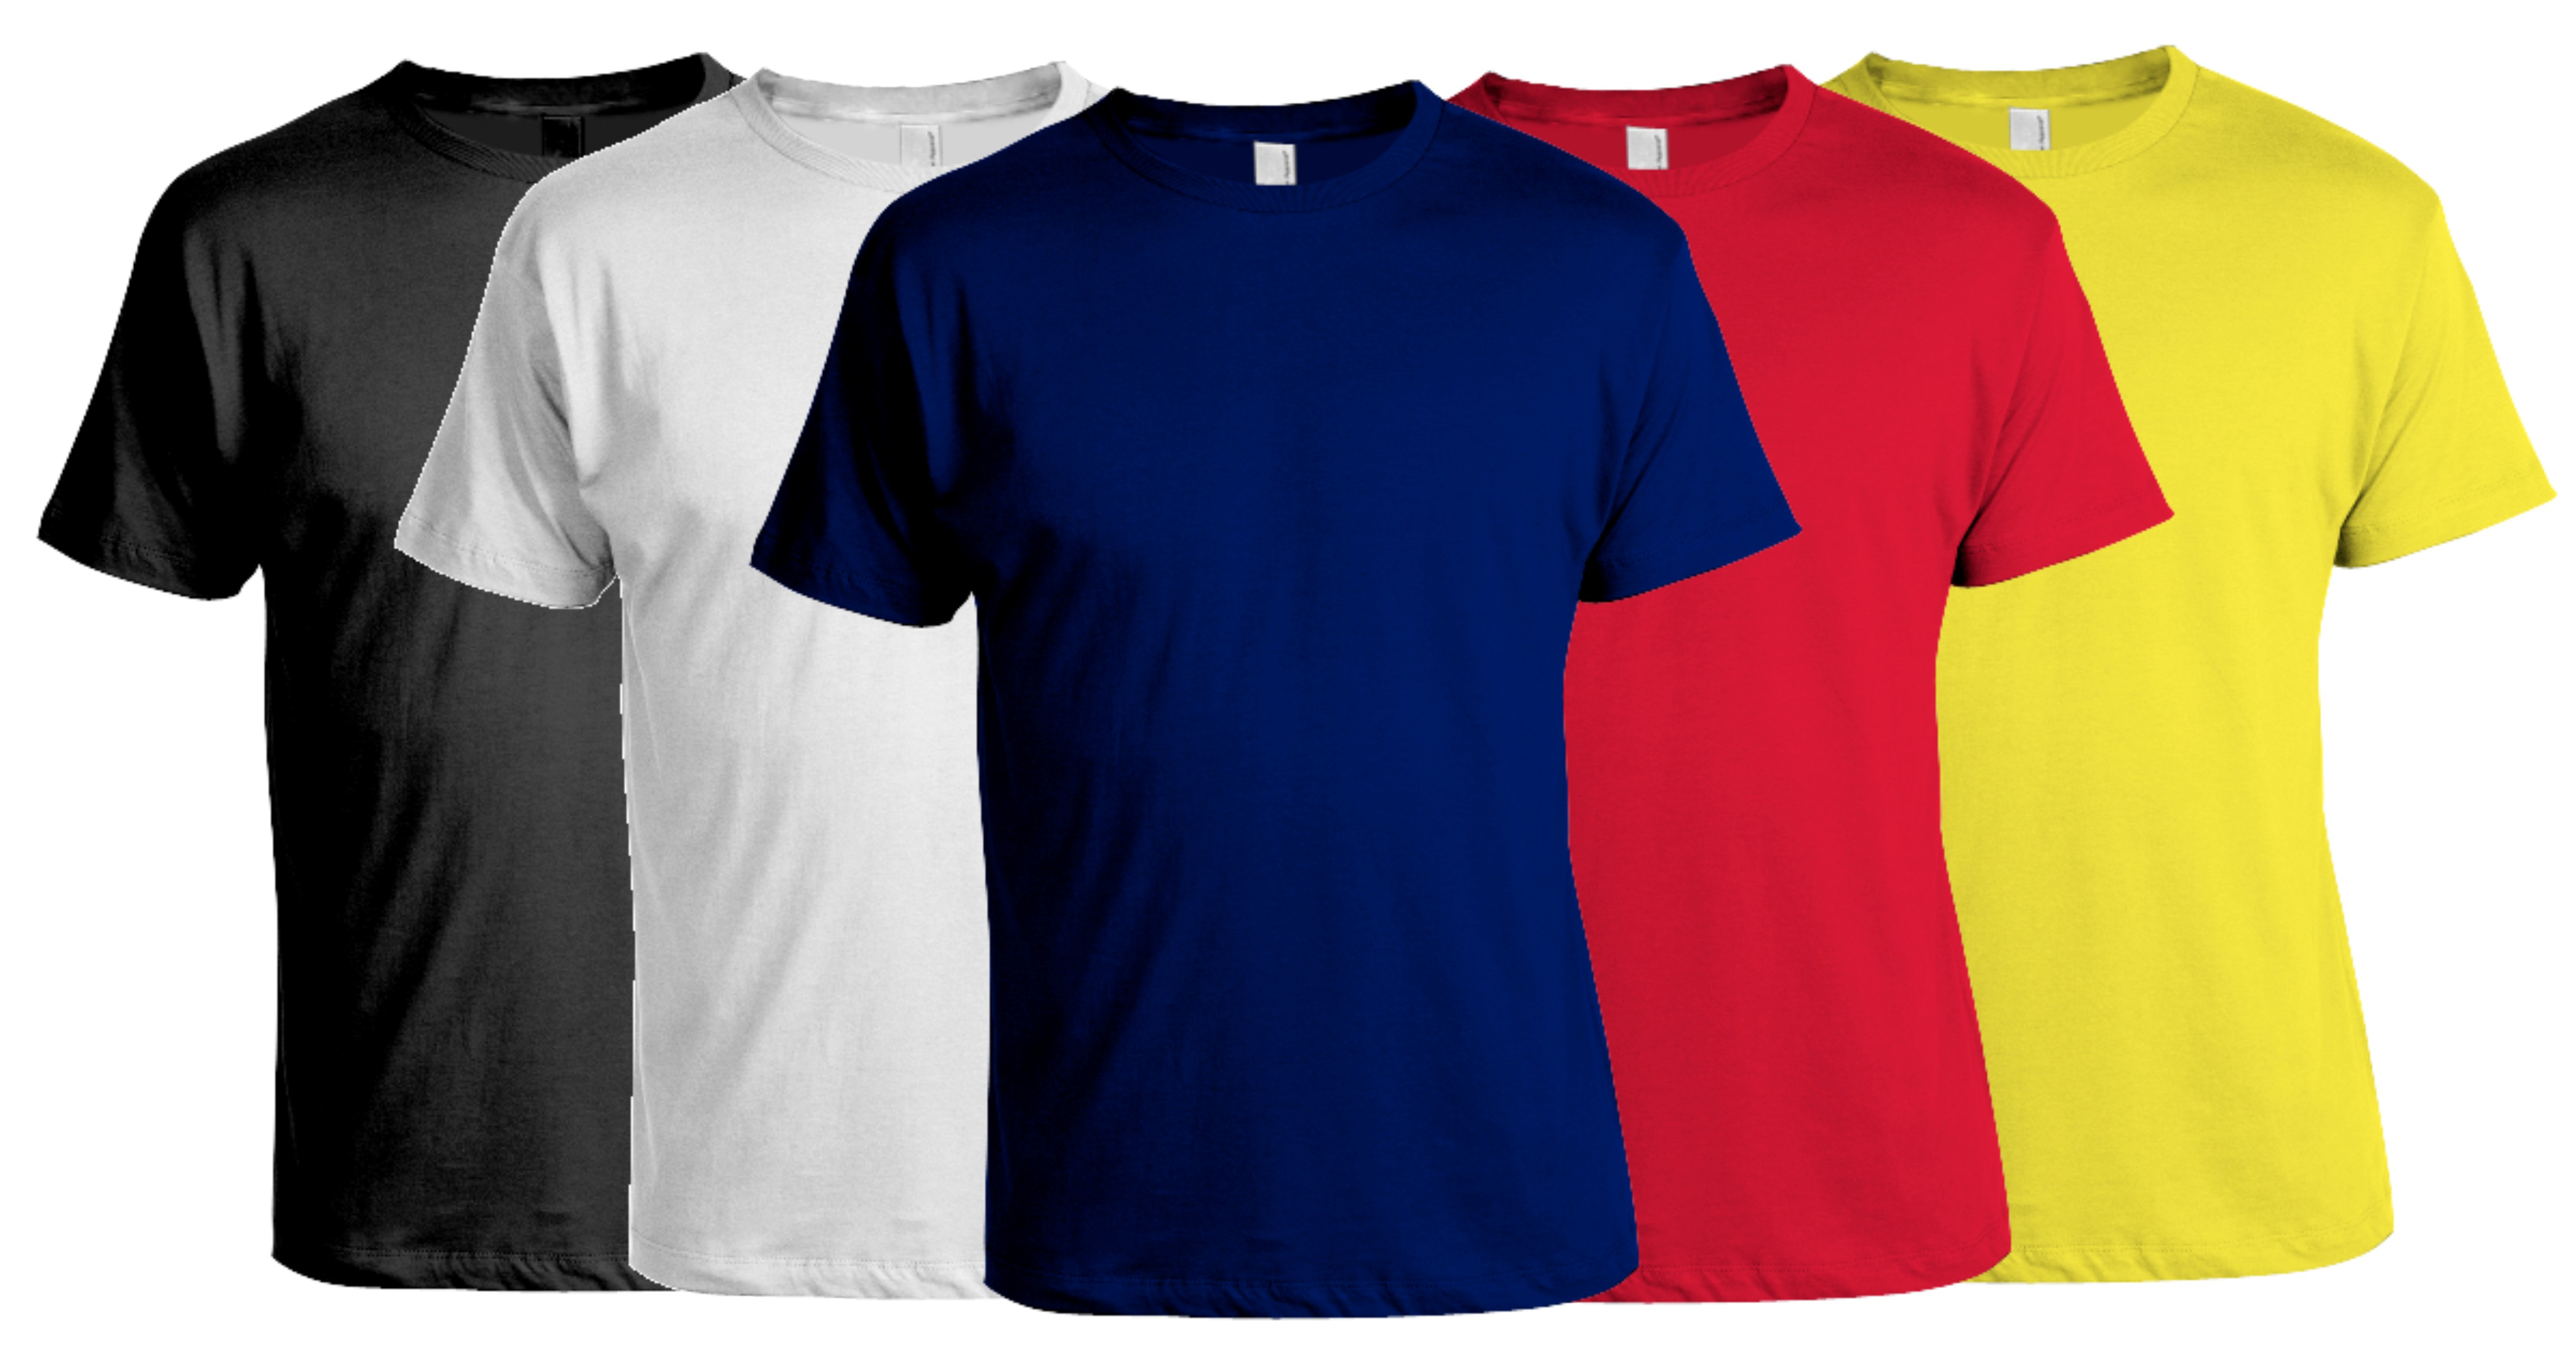 COMBO PACK OF 5 T-SHIRTS BUY Products Online at Best Prices in ...